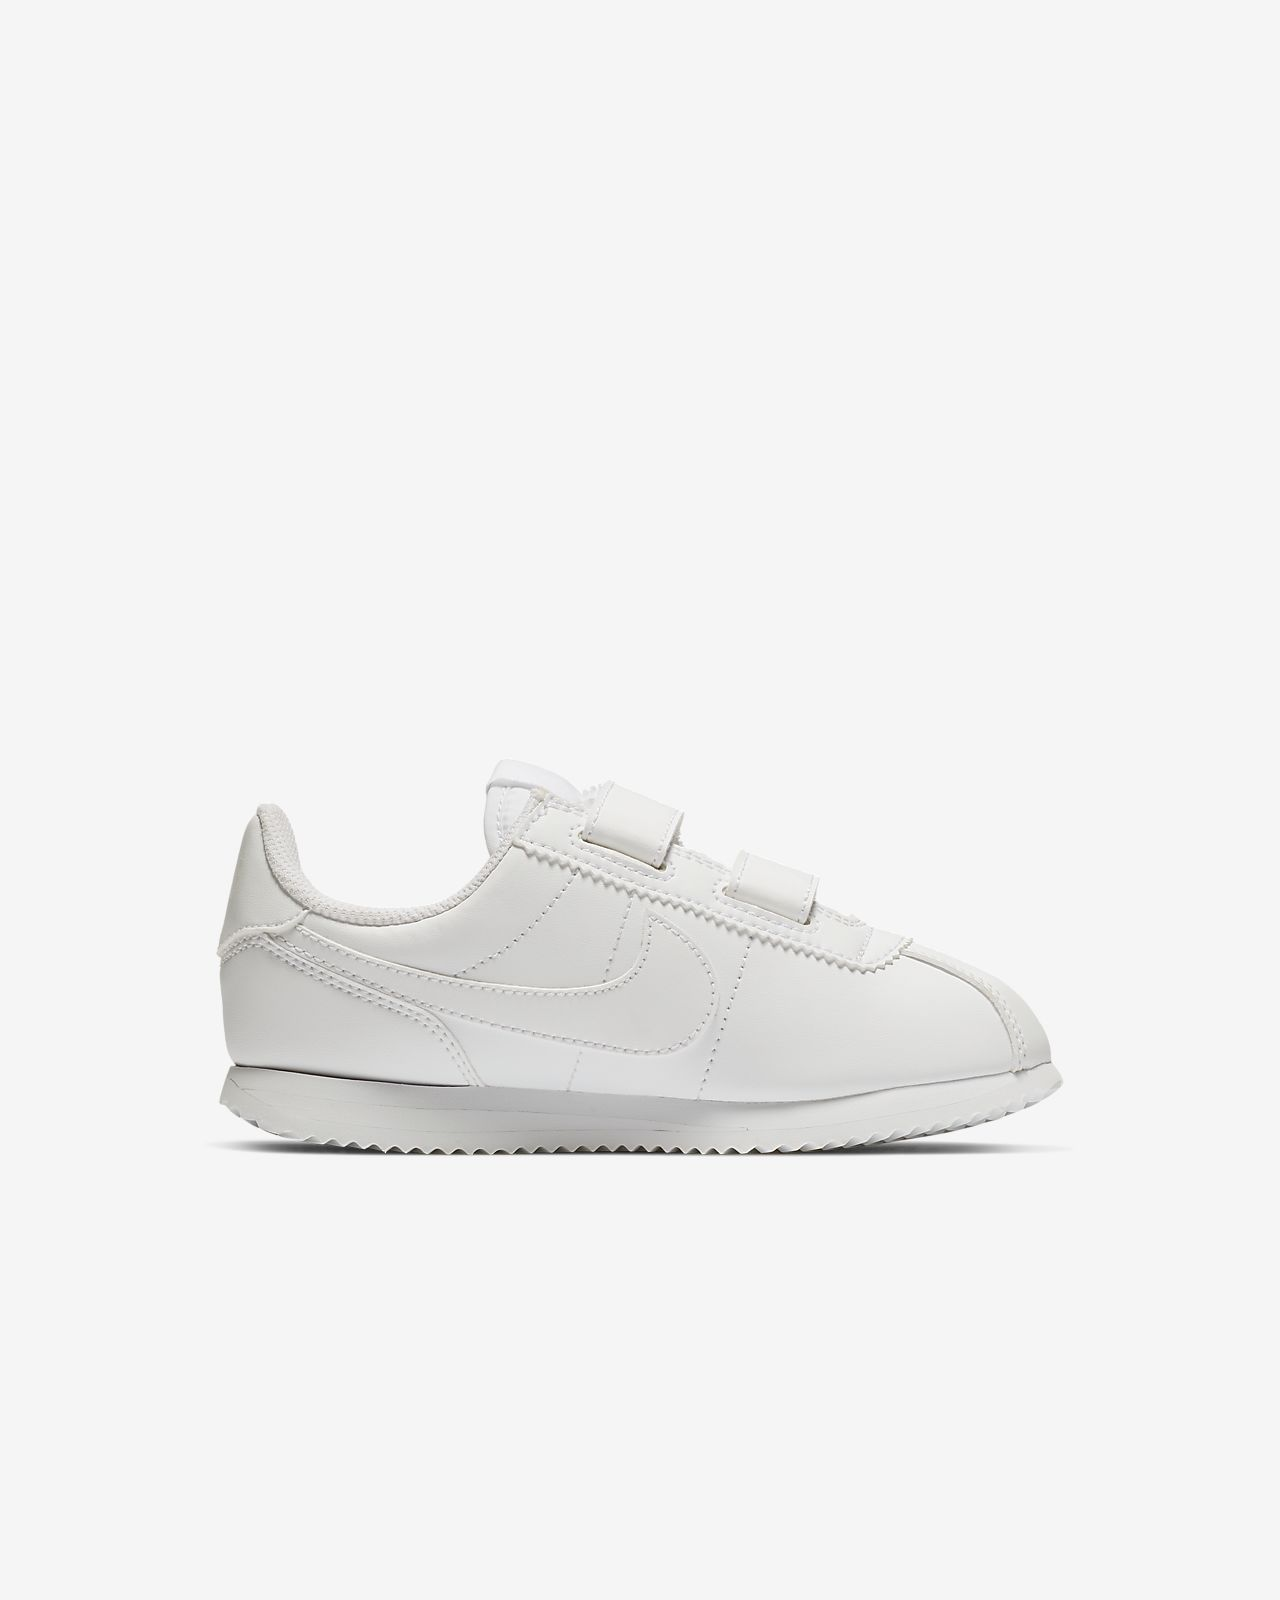 Kids' Little Cortez Sneaker Toddler | Baby shoes, Baby girl